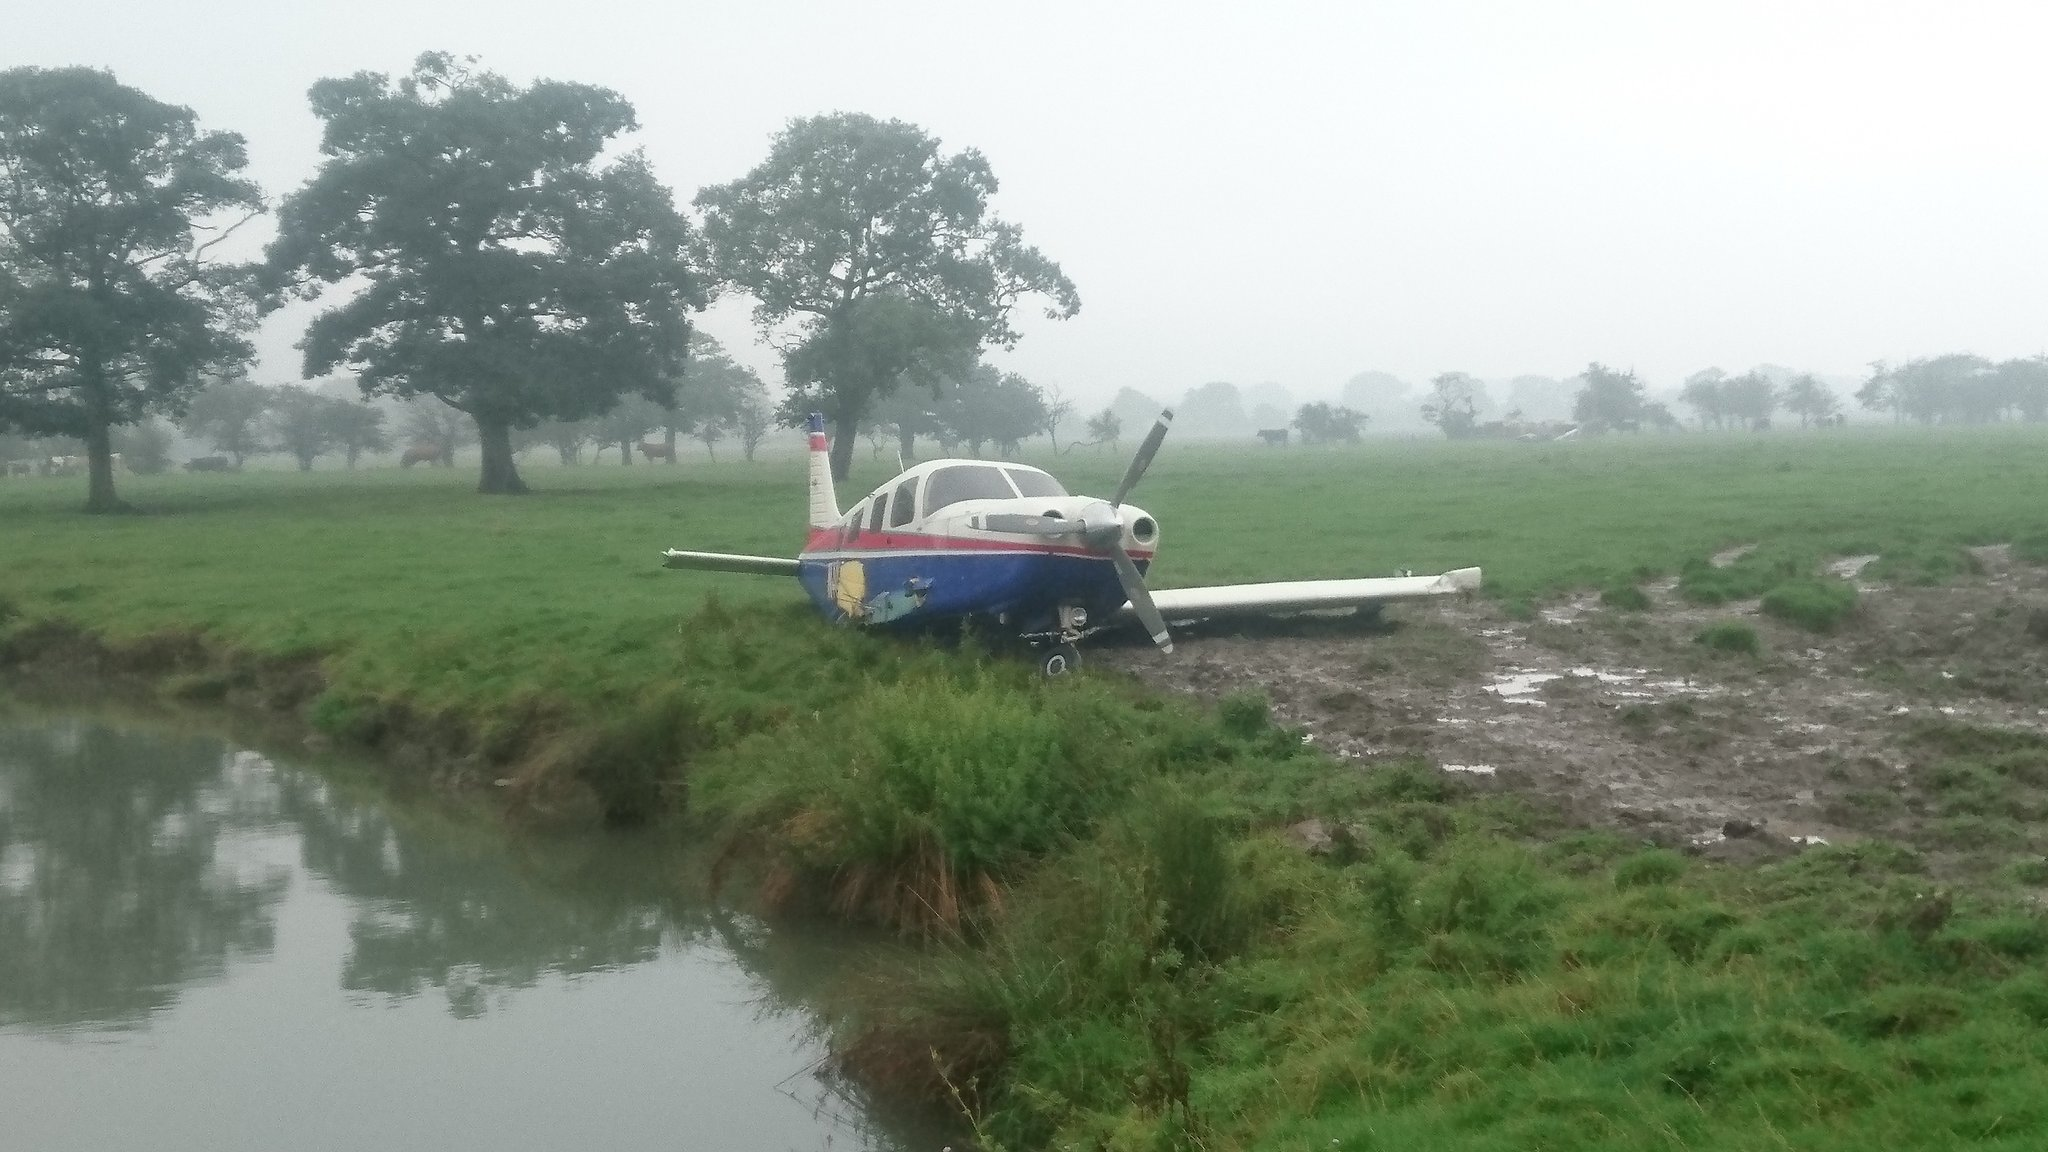 Lucky escape as plane crashes in North Yorkshire field